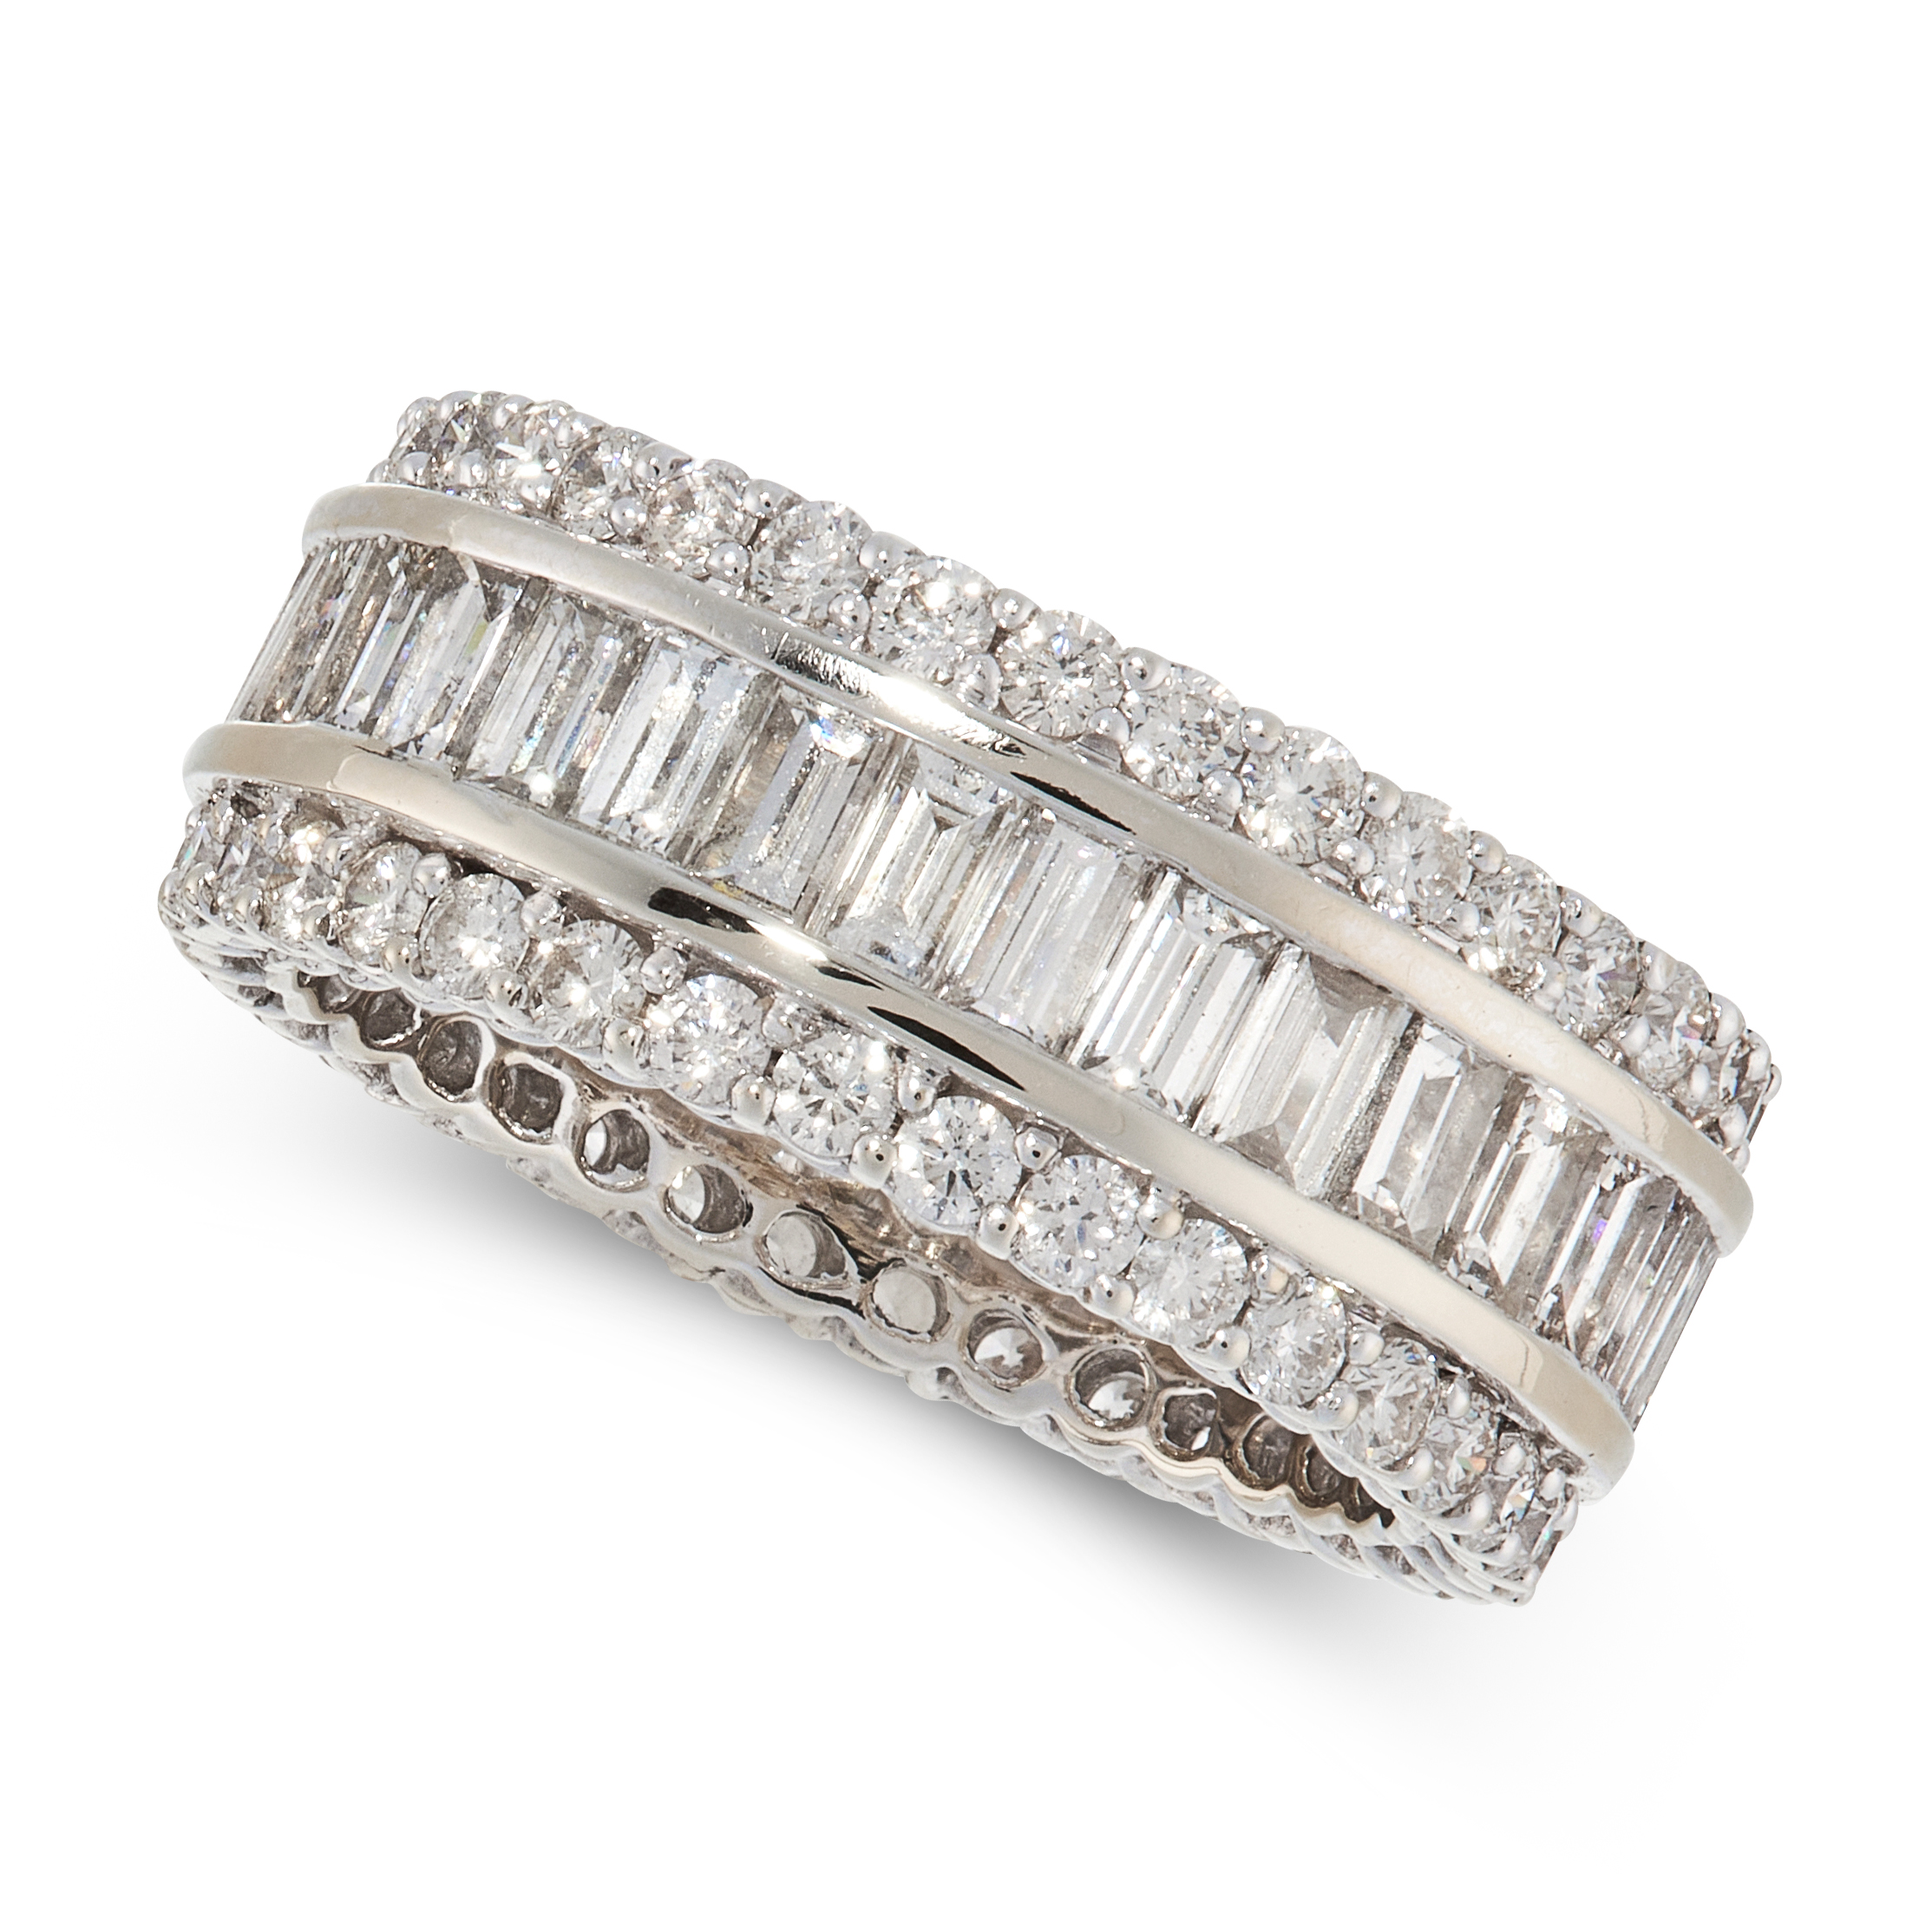 A DIAMOND ETERNITY RING in 18ct white gold, set with a central row of baguette cut diamonds